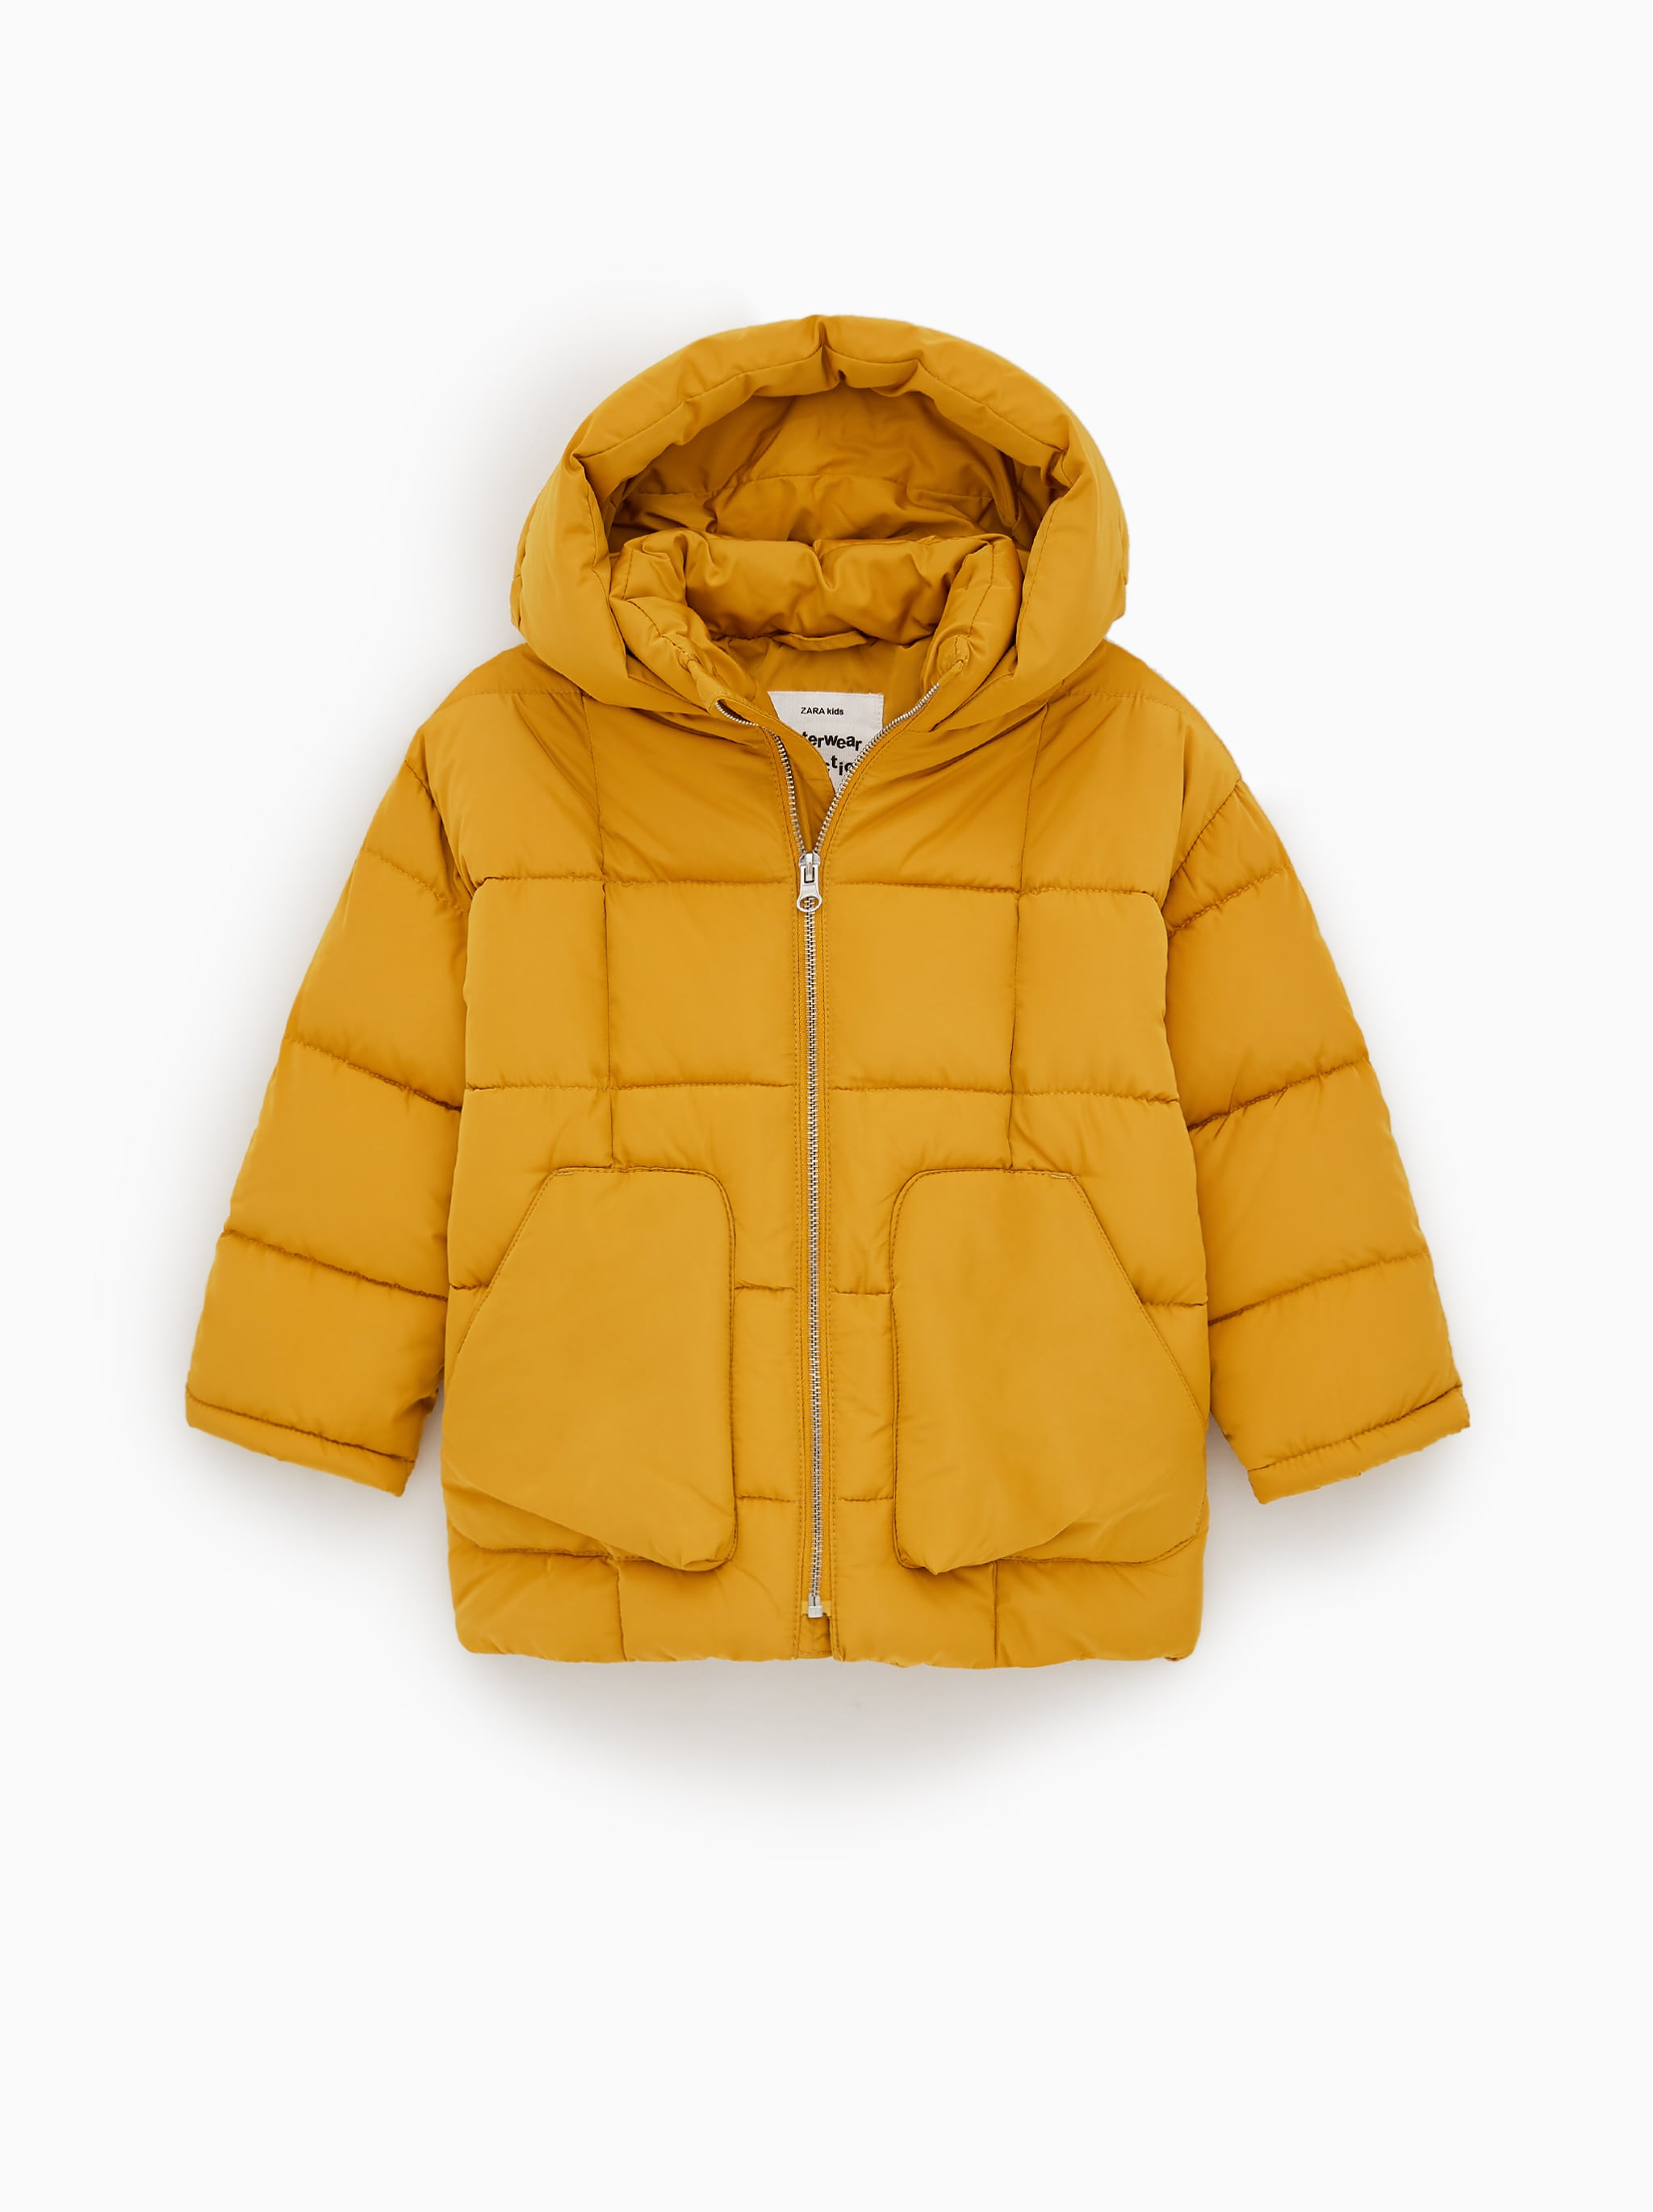 Zara SQUARE QUILTED PUFFER JACKET 8e510a882b0